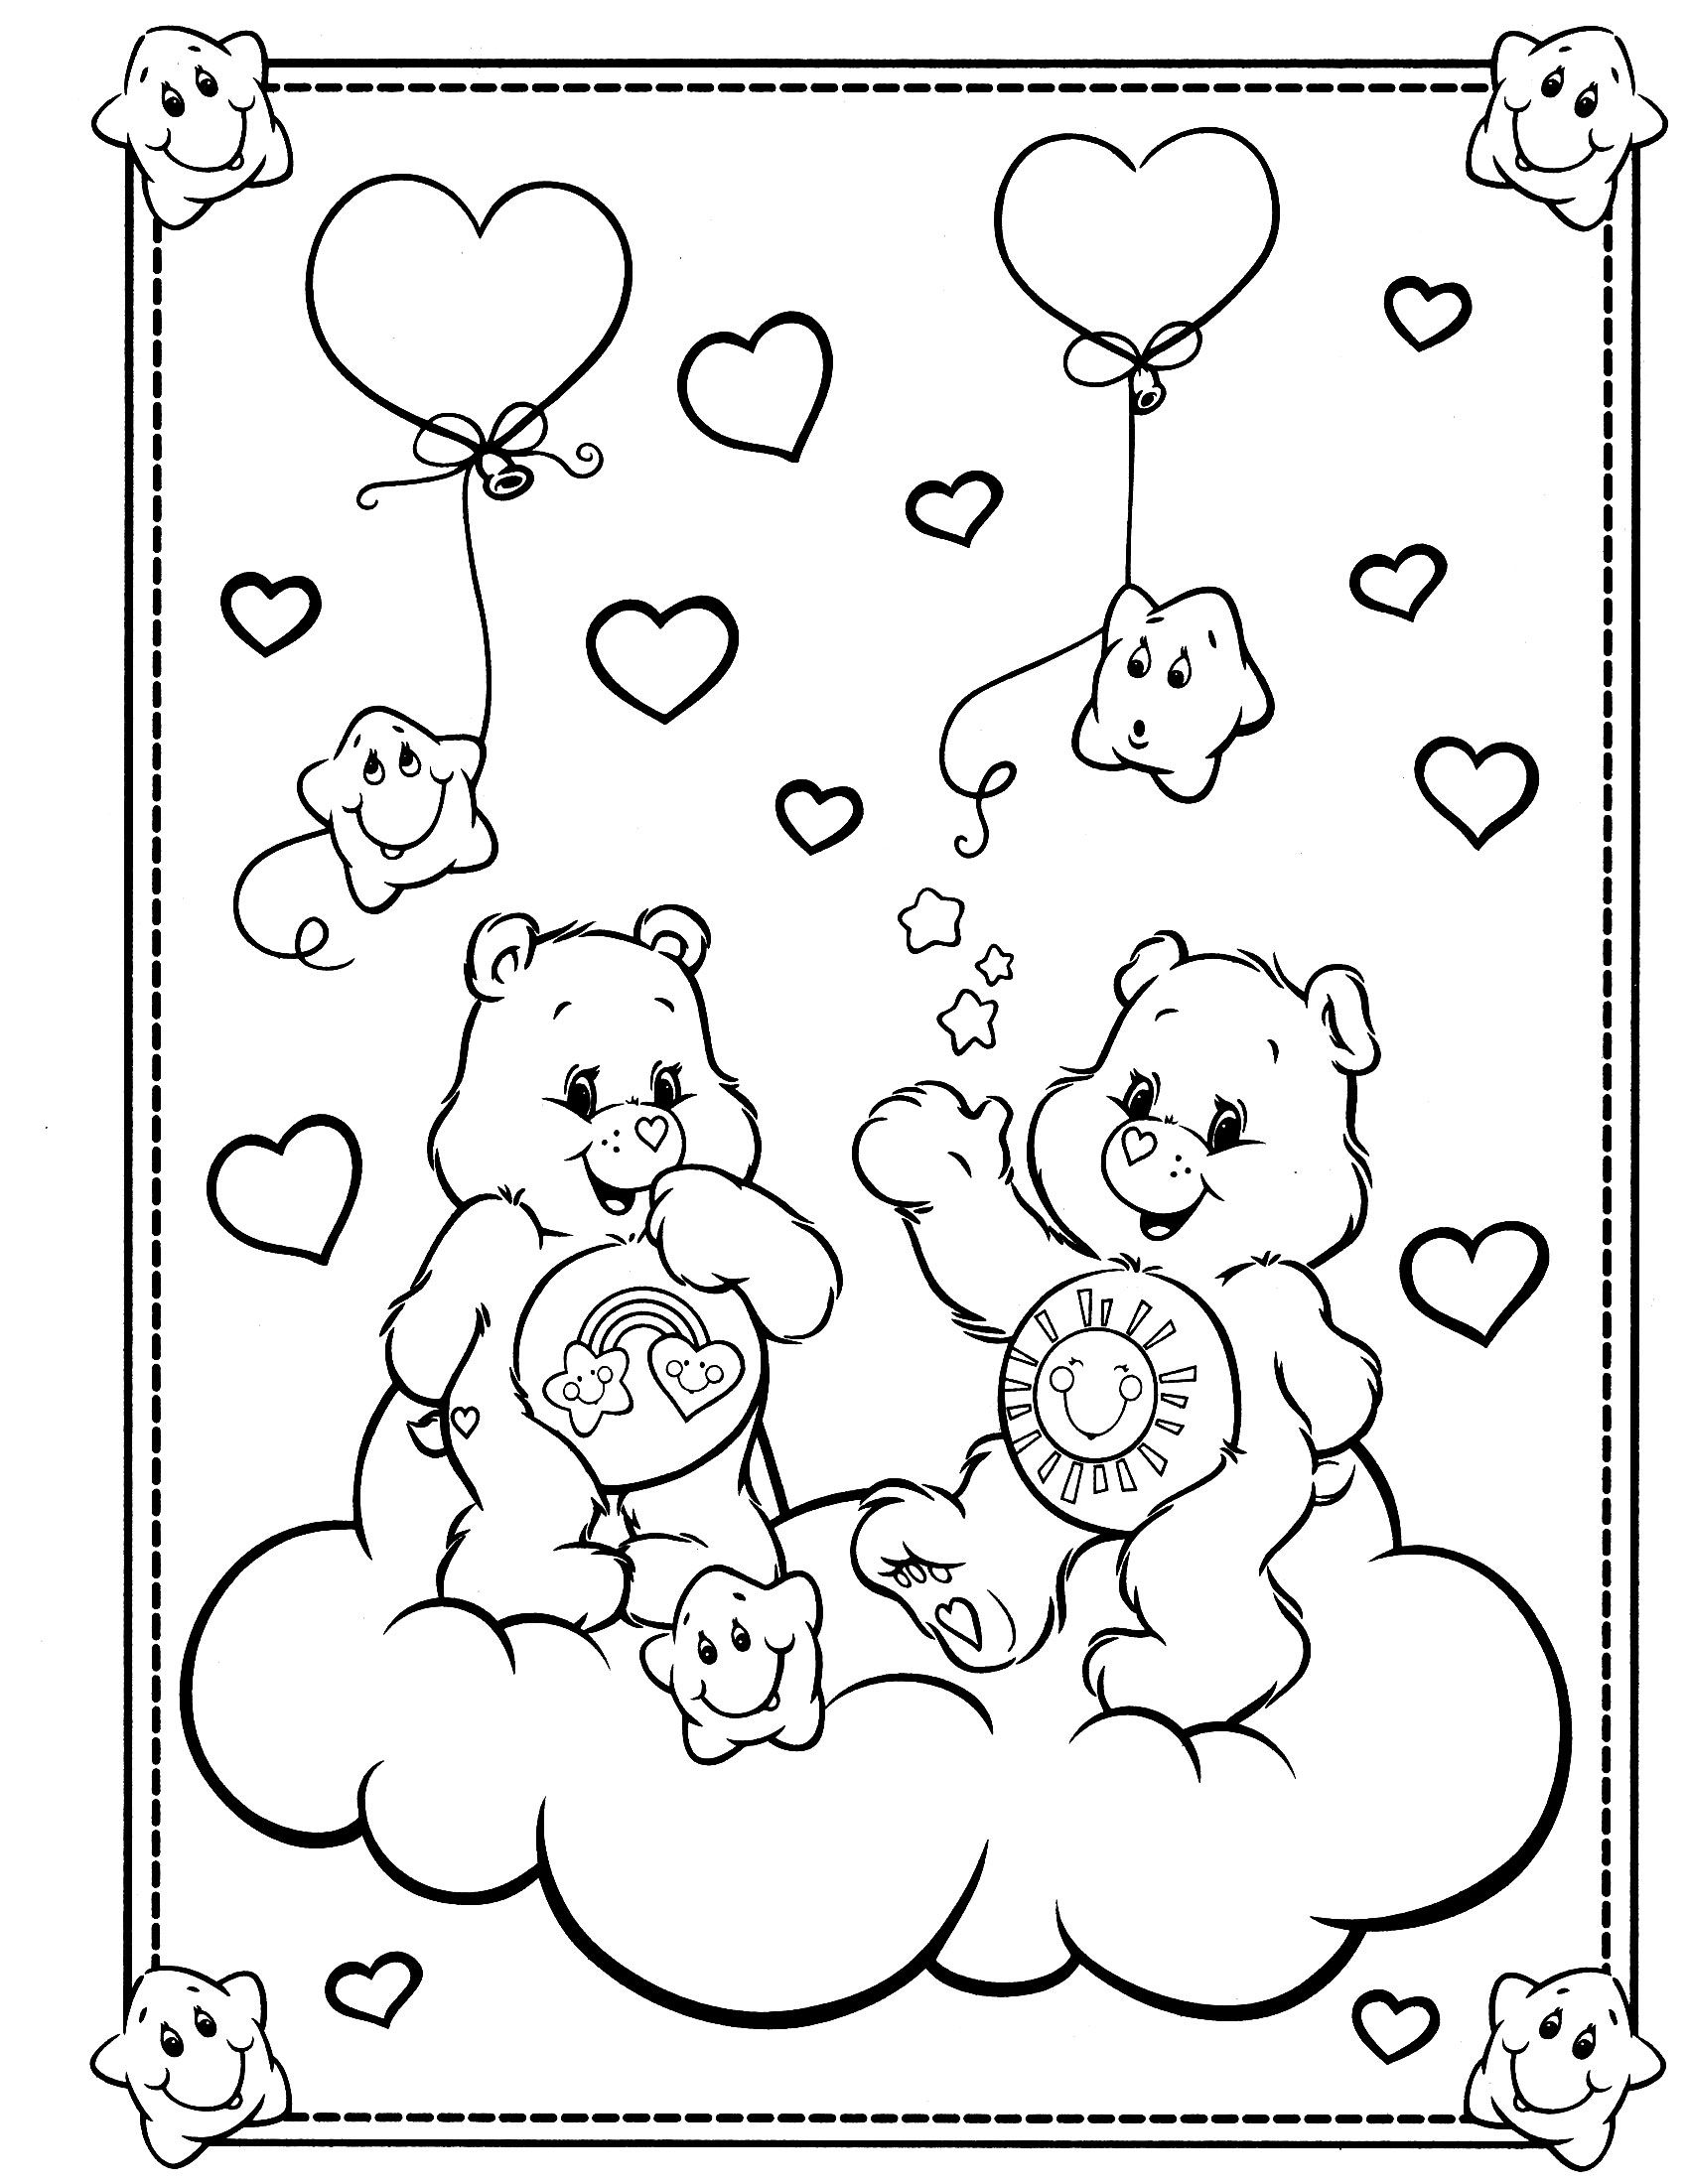 care bears coloring page embroider